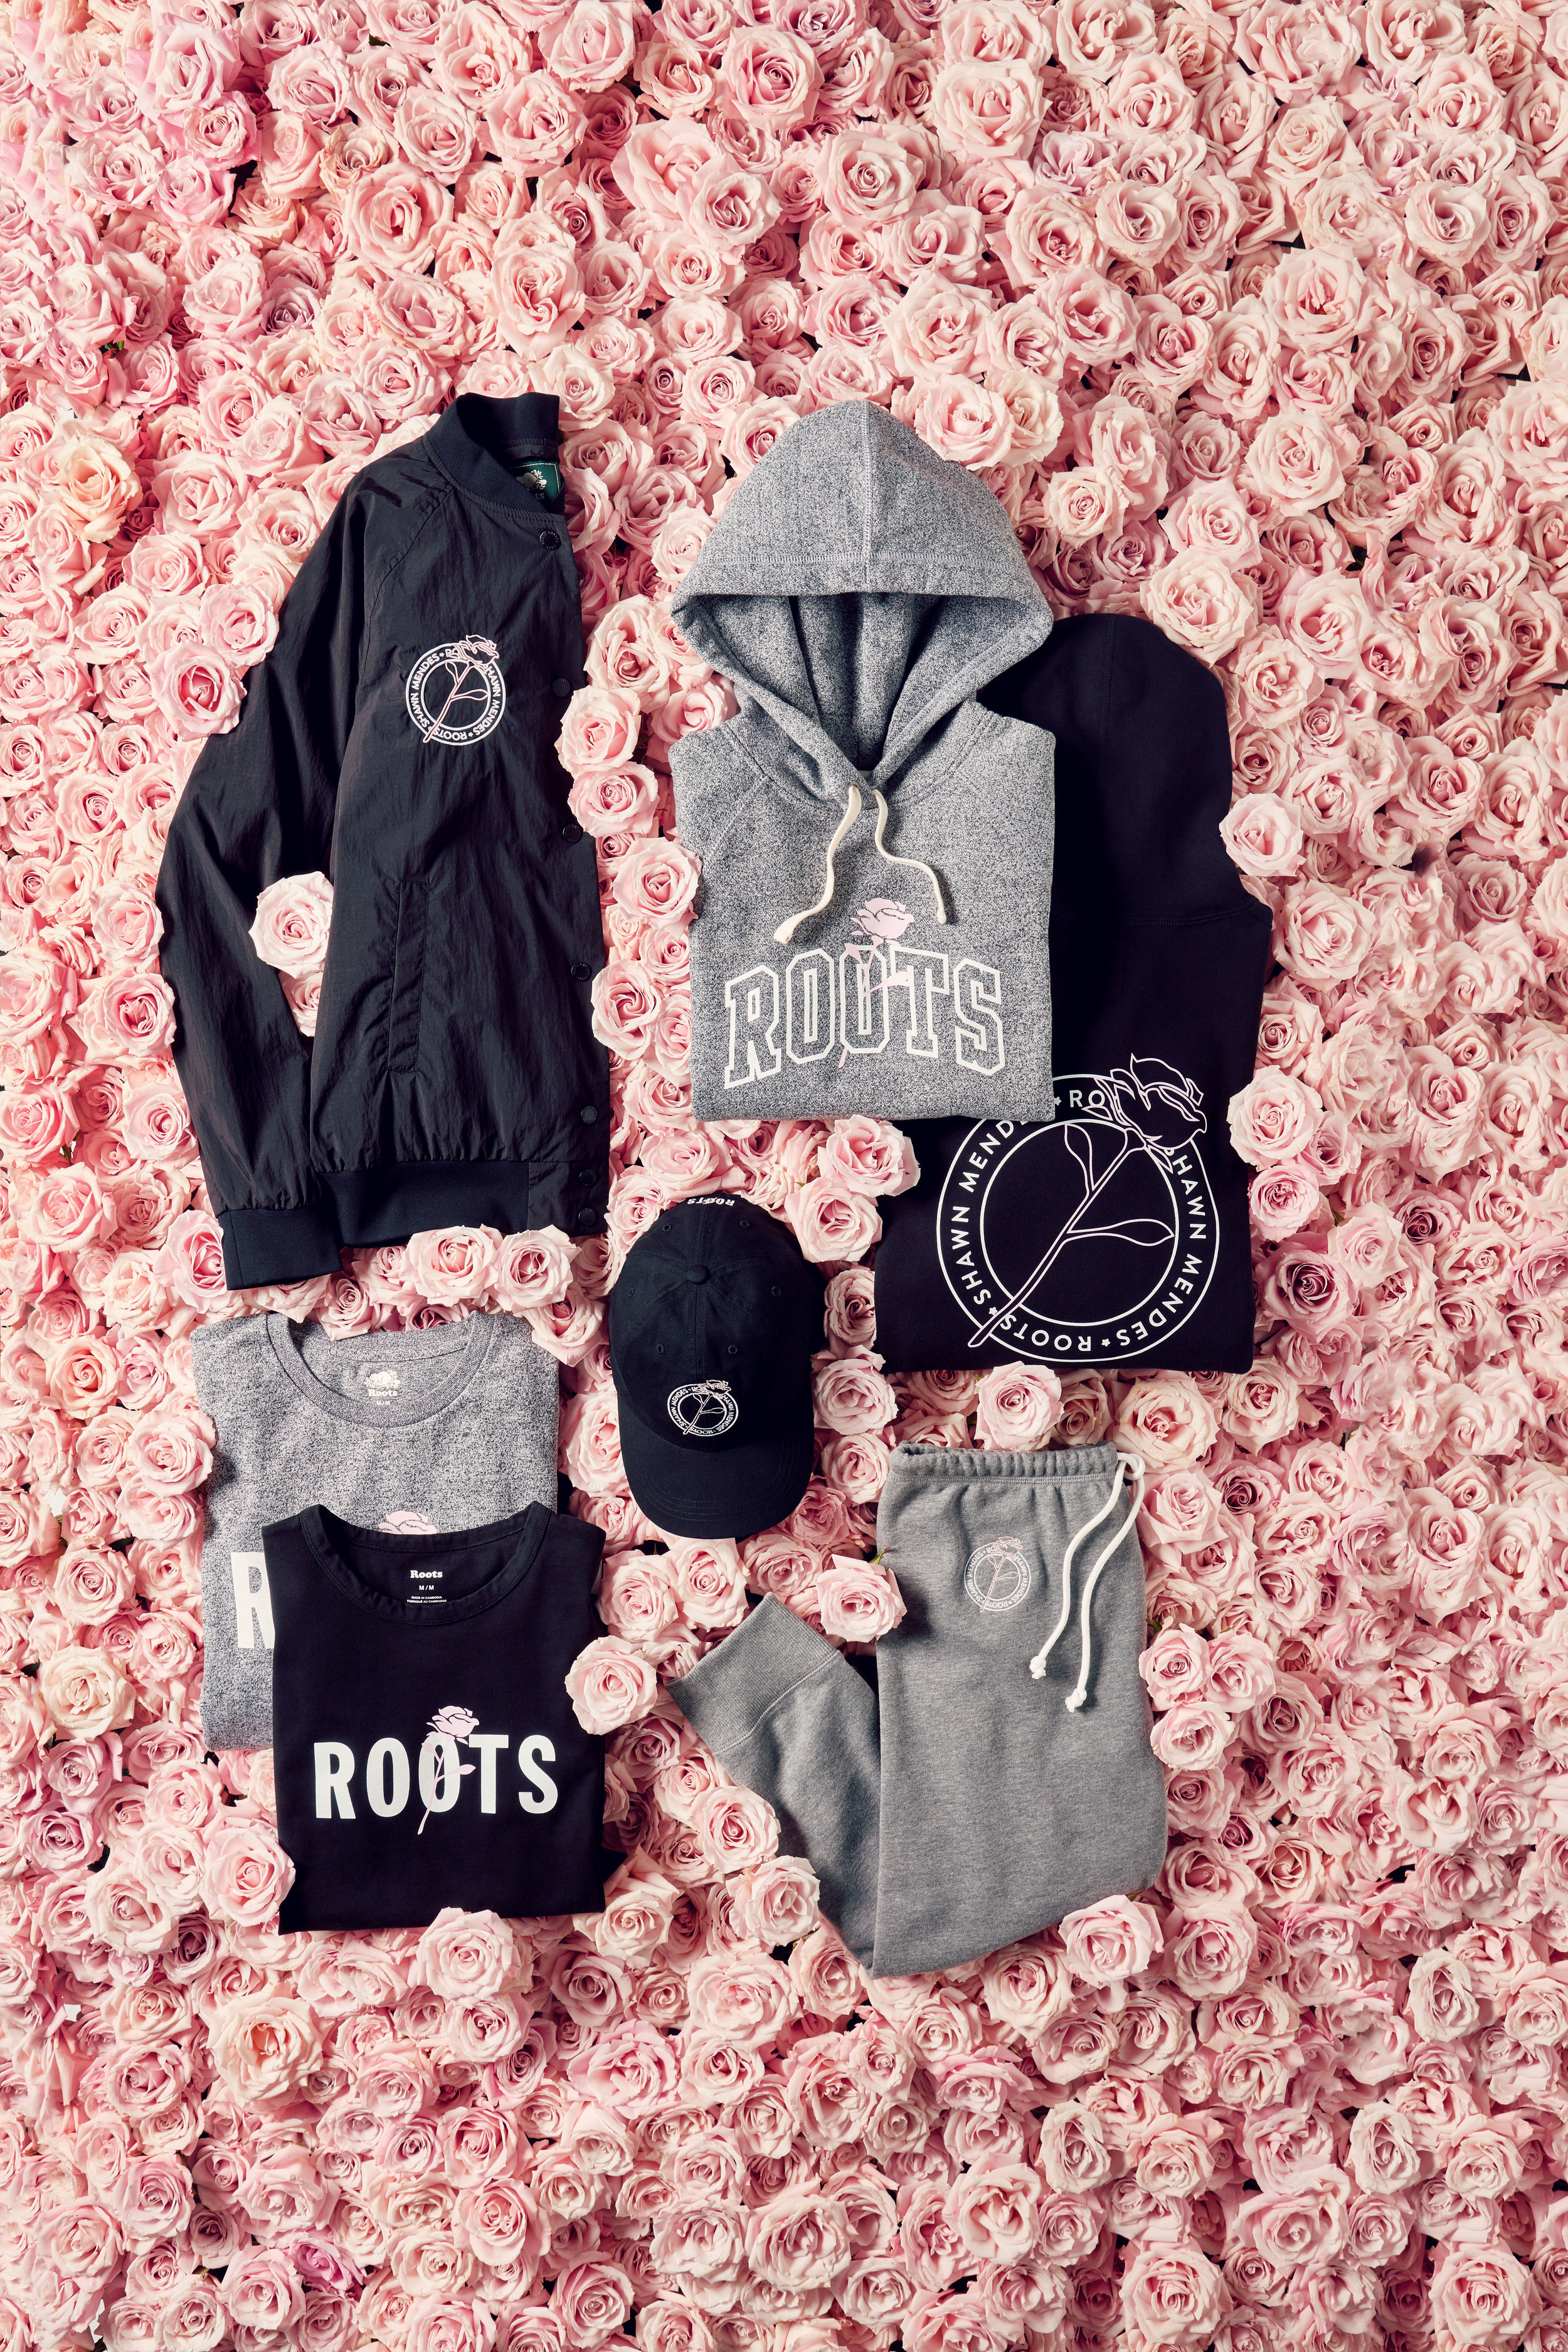 Roots x Shawn Mendes 2019.jpg